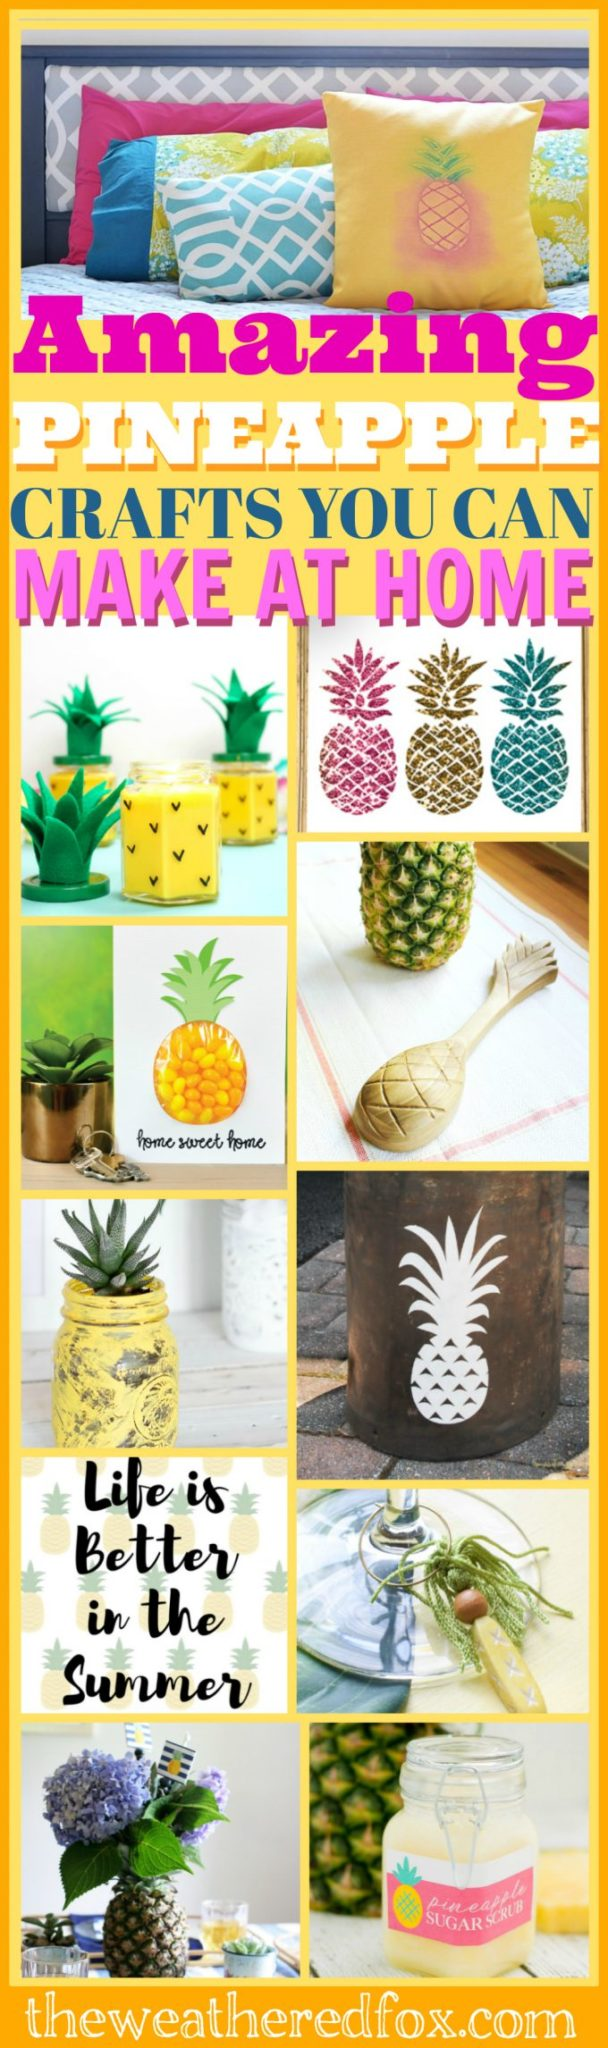 Pineapples!!! Check out all these creative and amazing DIY ideas to bring some pineapple into your home. Decor, recipes, crafts and printables including an upcycled mason jar succulent planter.